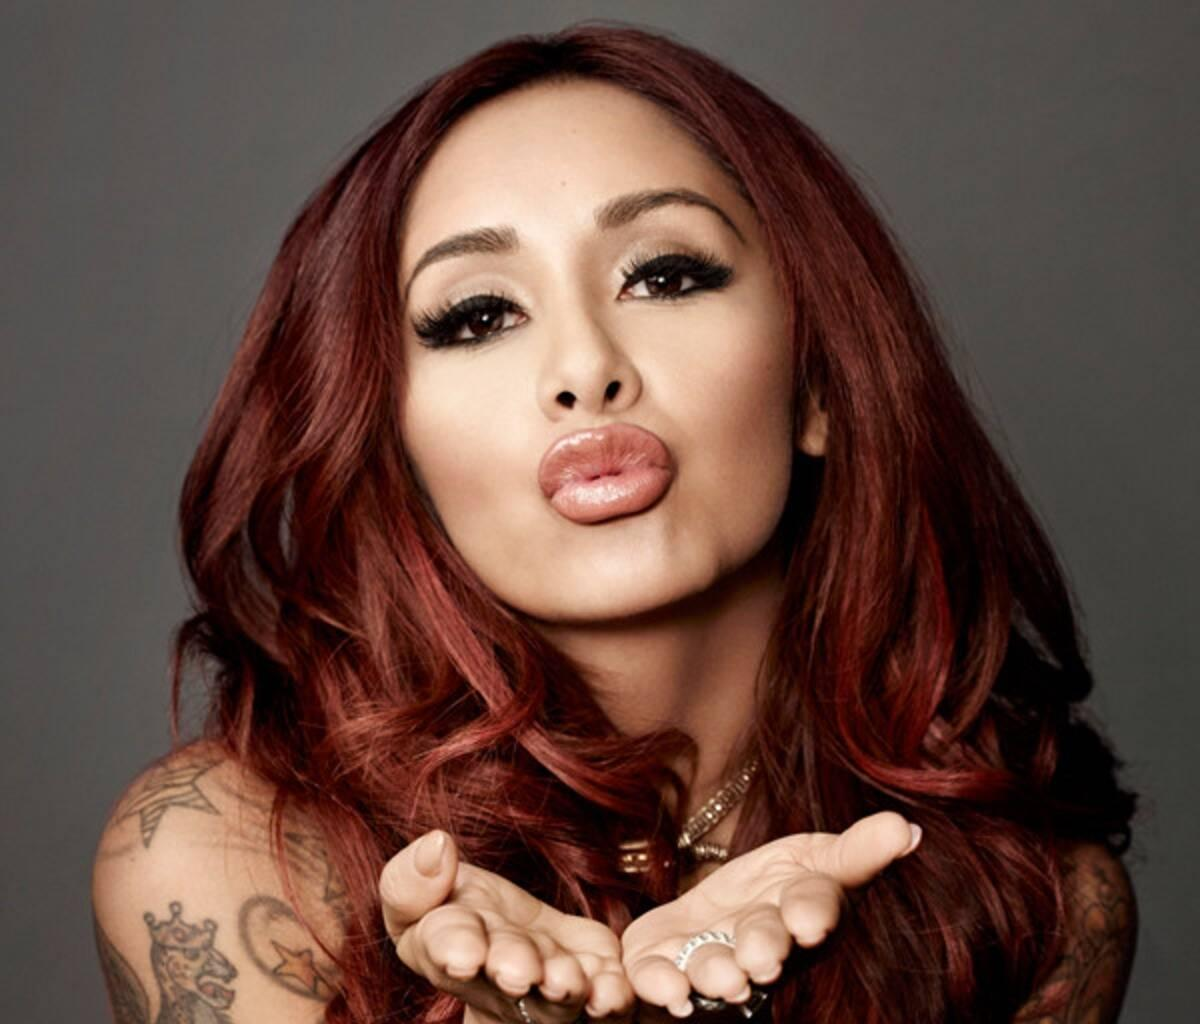 Snooki Is Back On 'Jersey Shore: Family Vacation' - Here's How Her Co-Stars Feel About It!